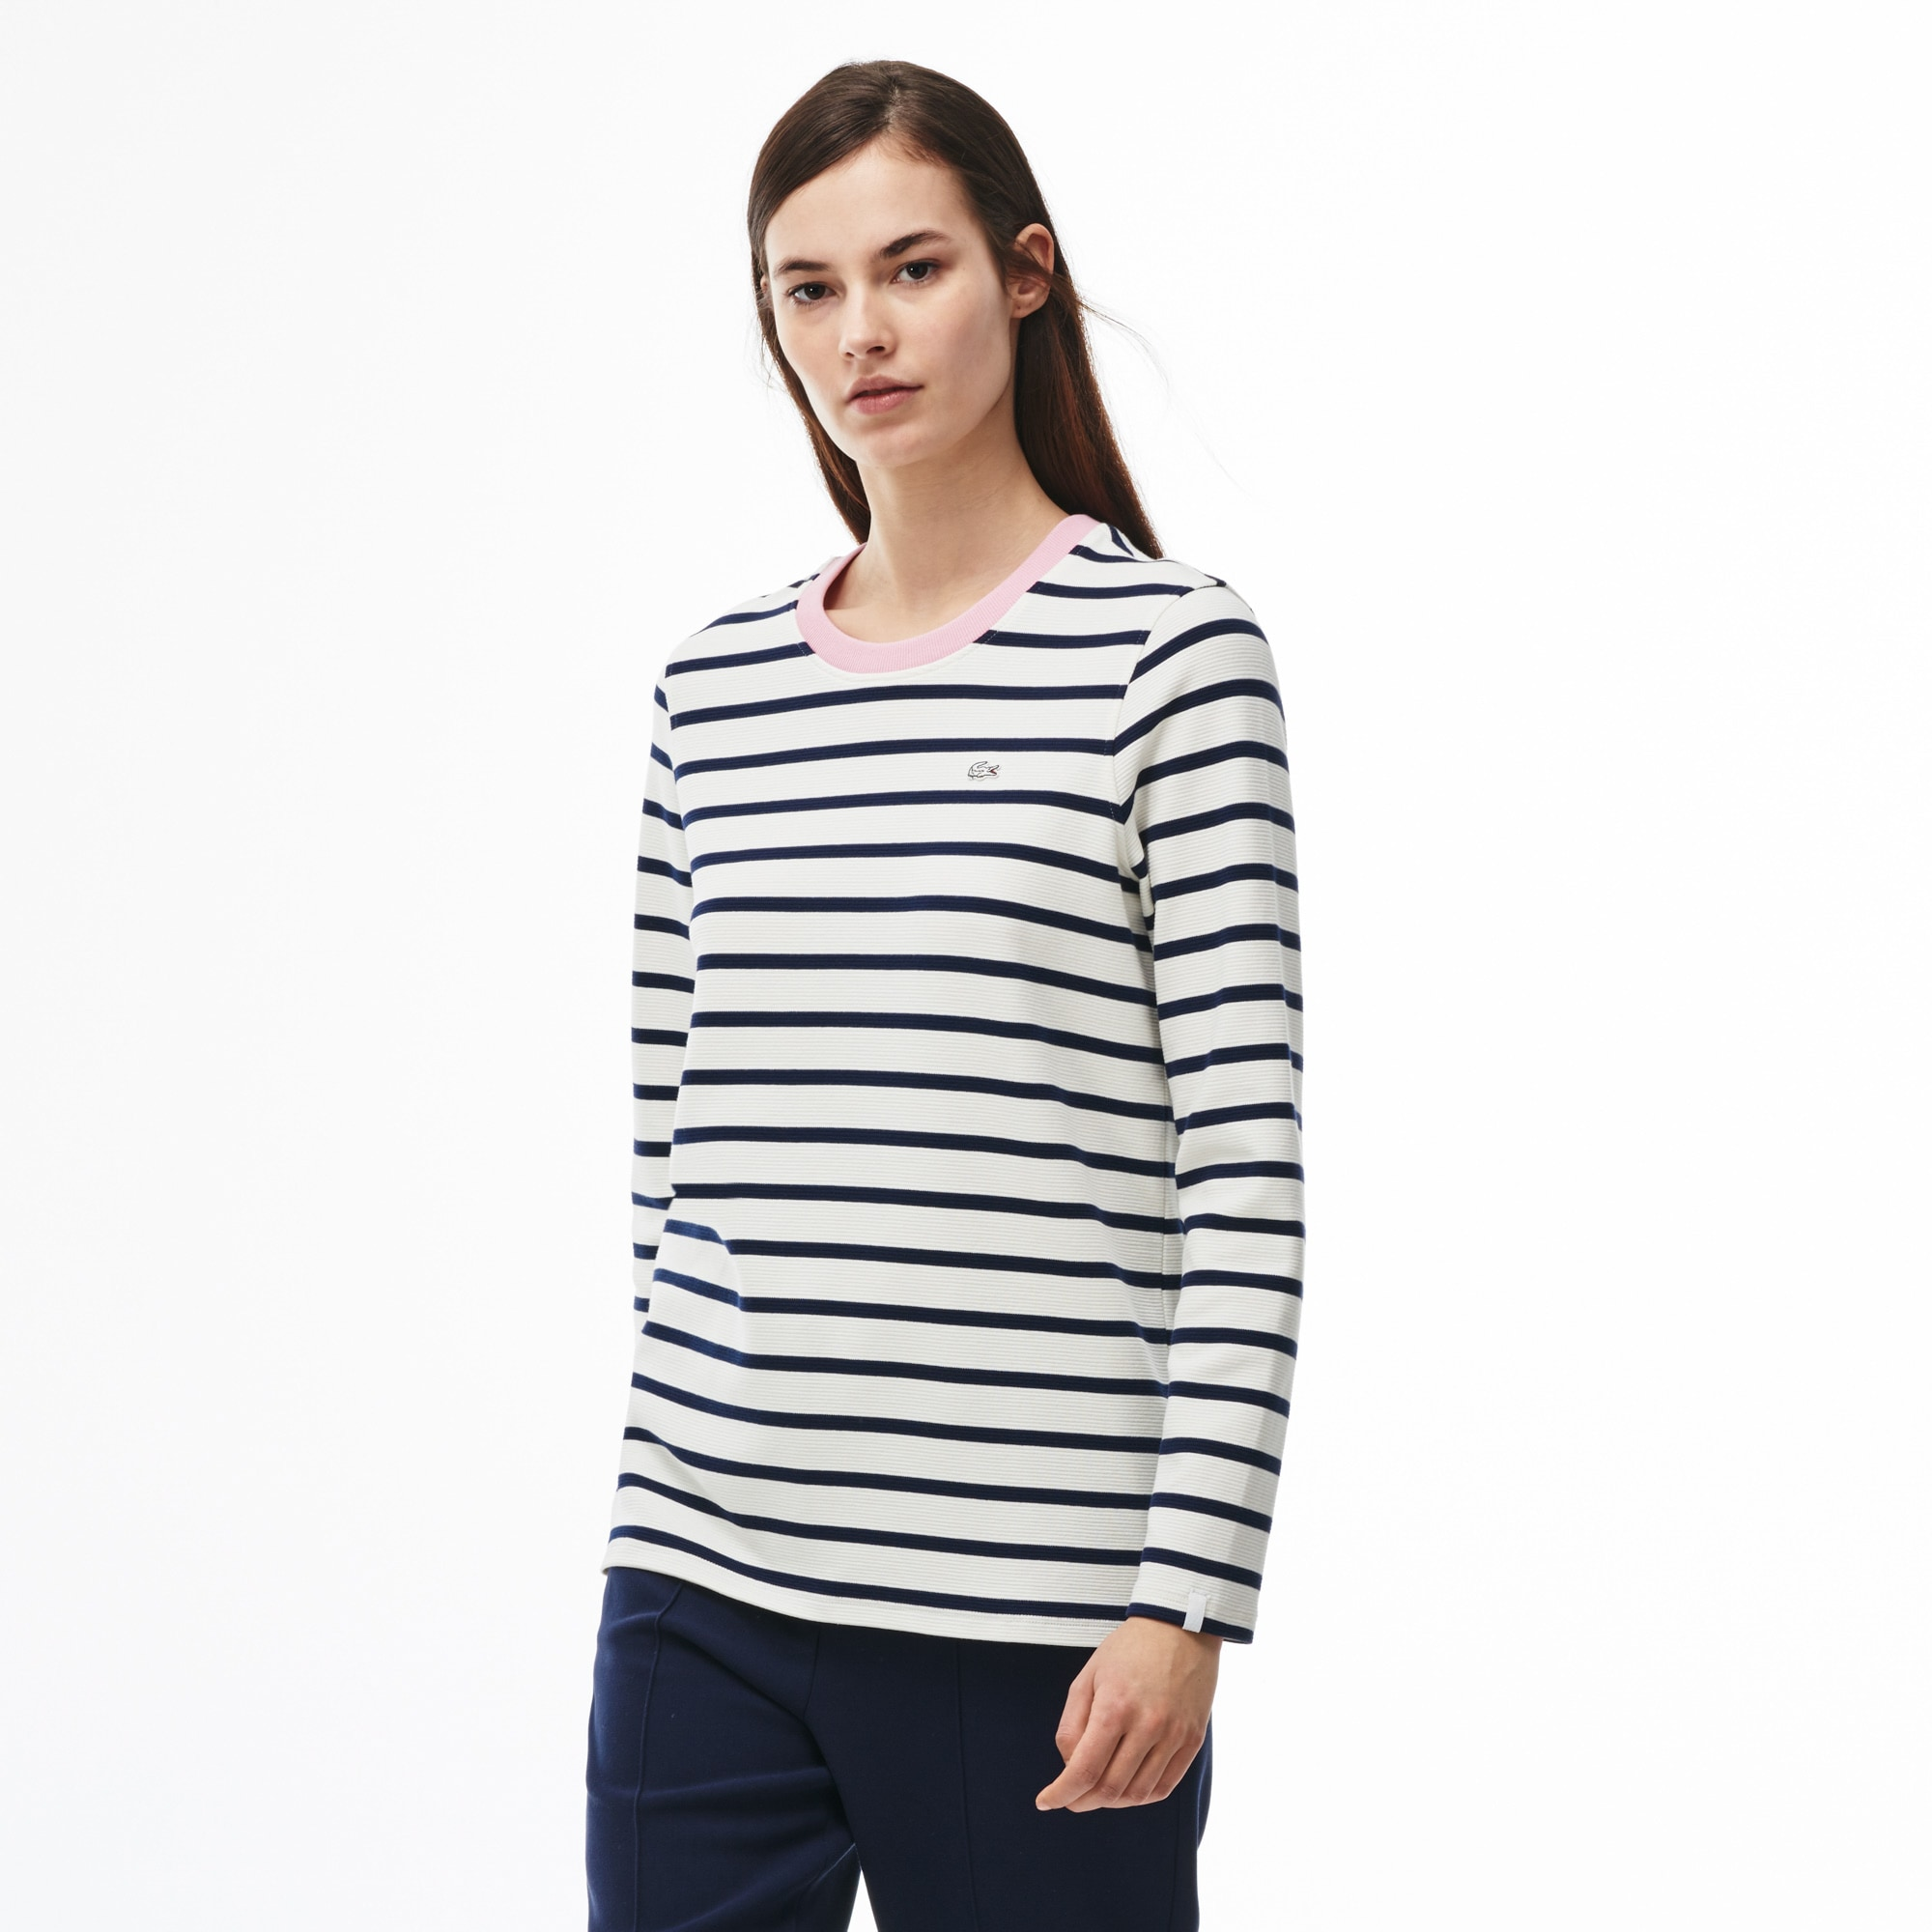 Women's Lacoste LIVE Contrast Collar Ottoman Knit Nautical Shirt